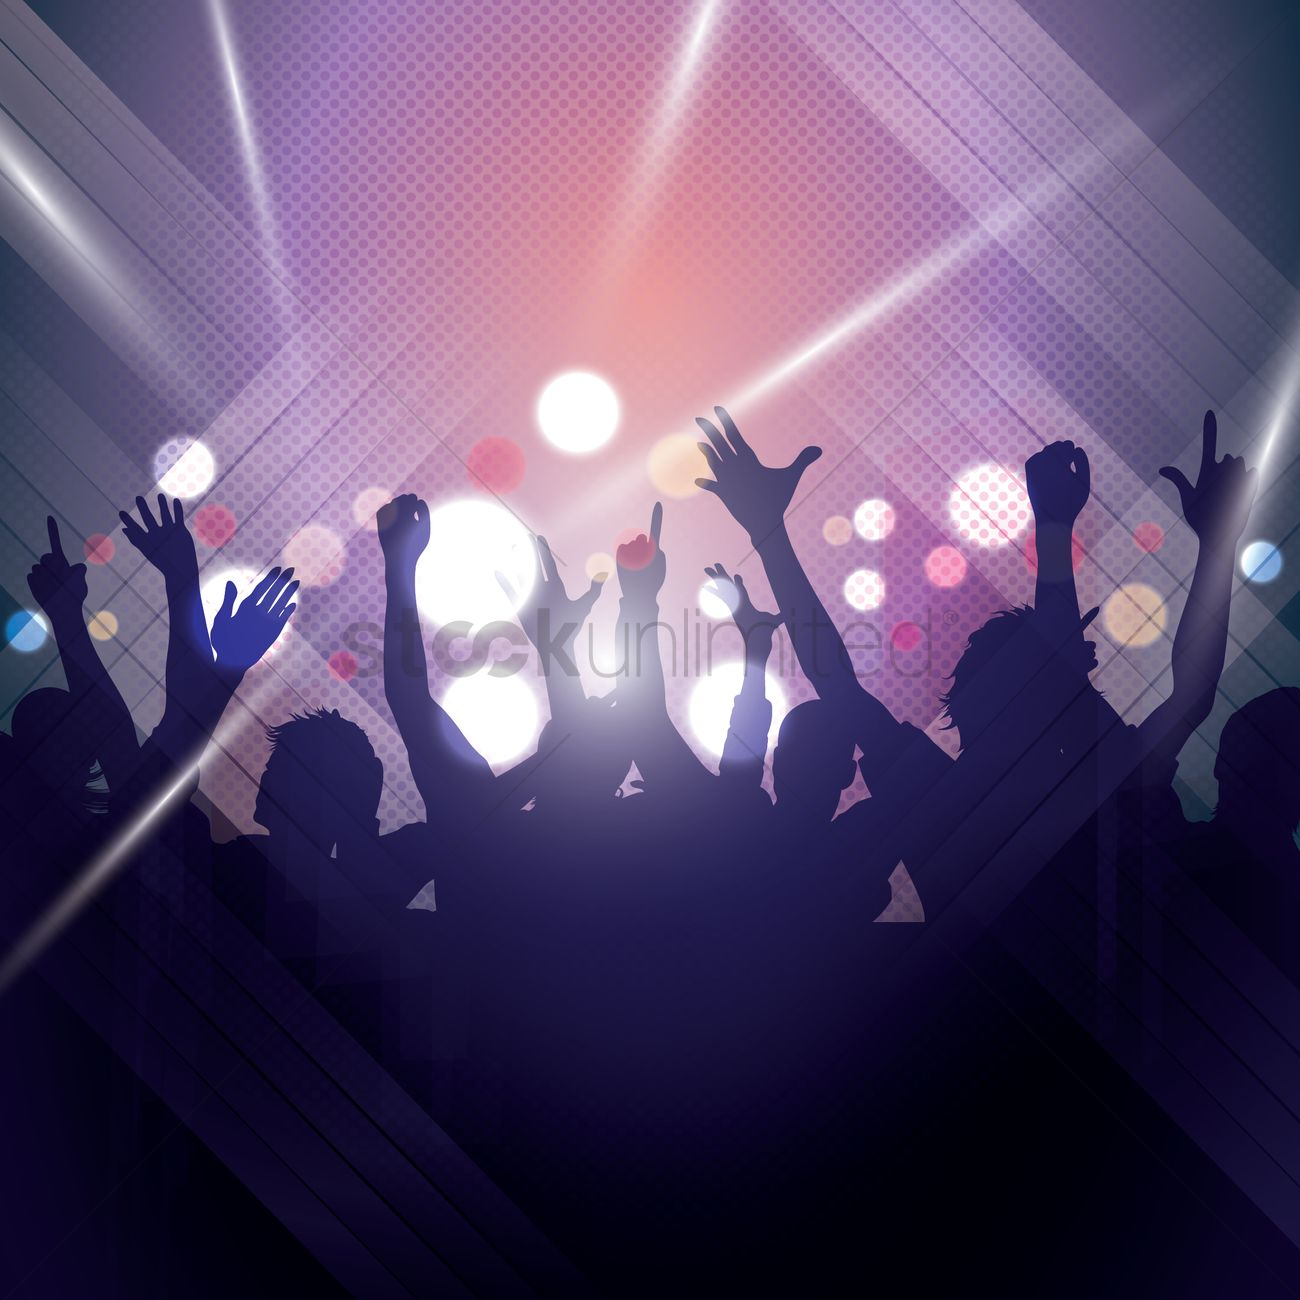 silhouette of people partying vector image 1936042 stockunlimited